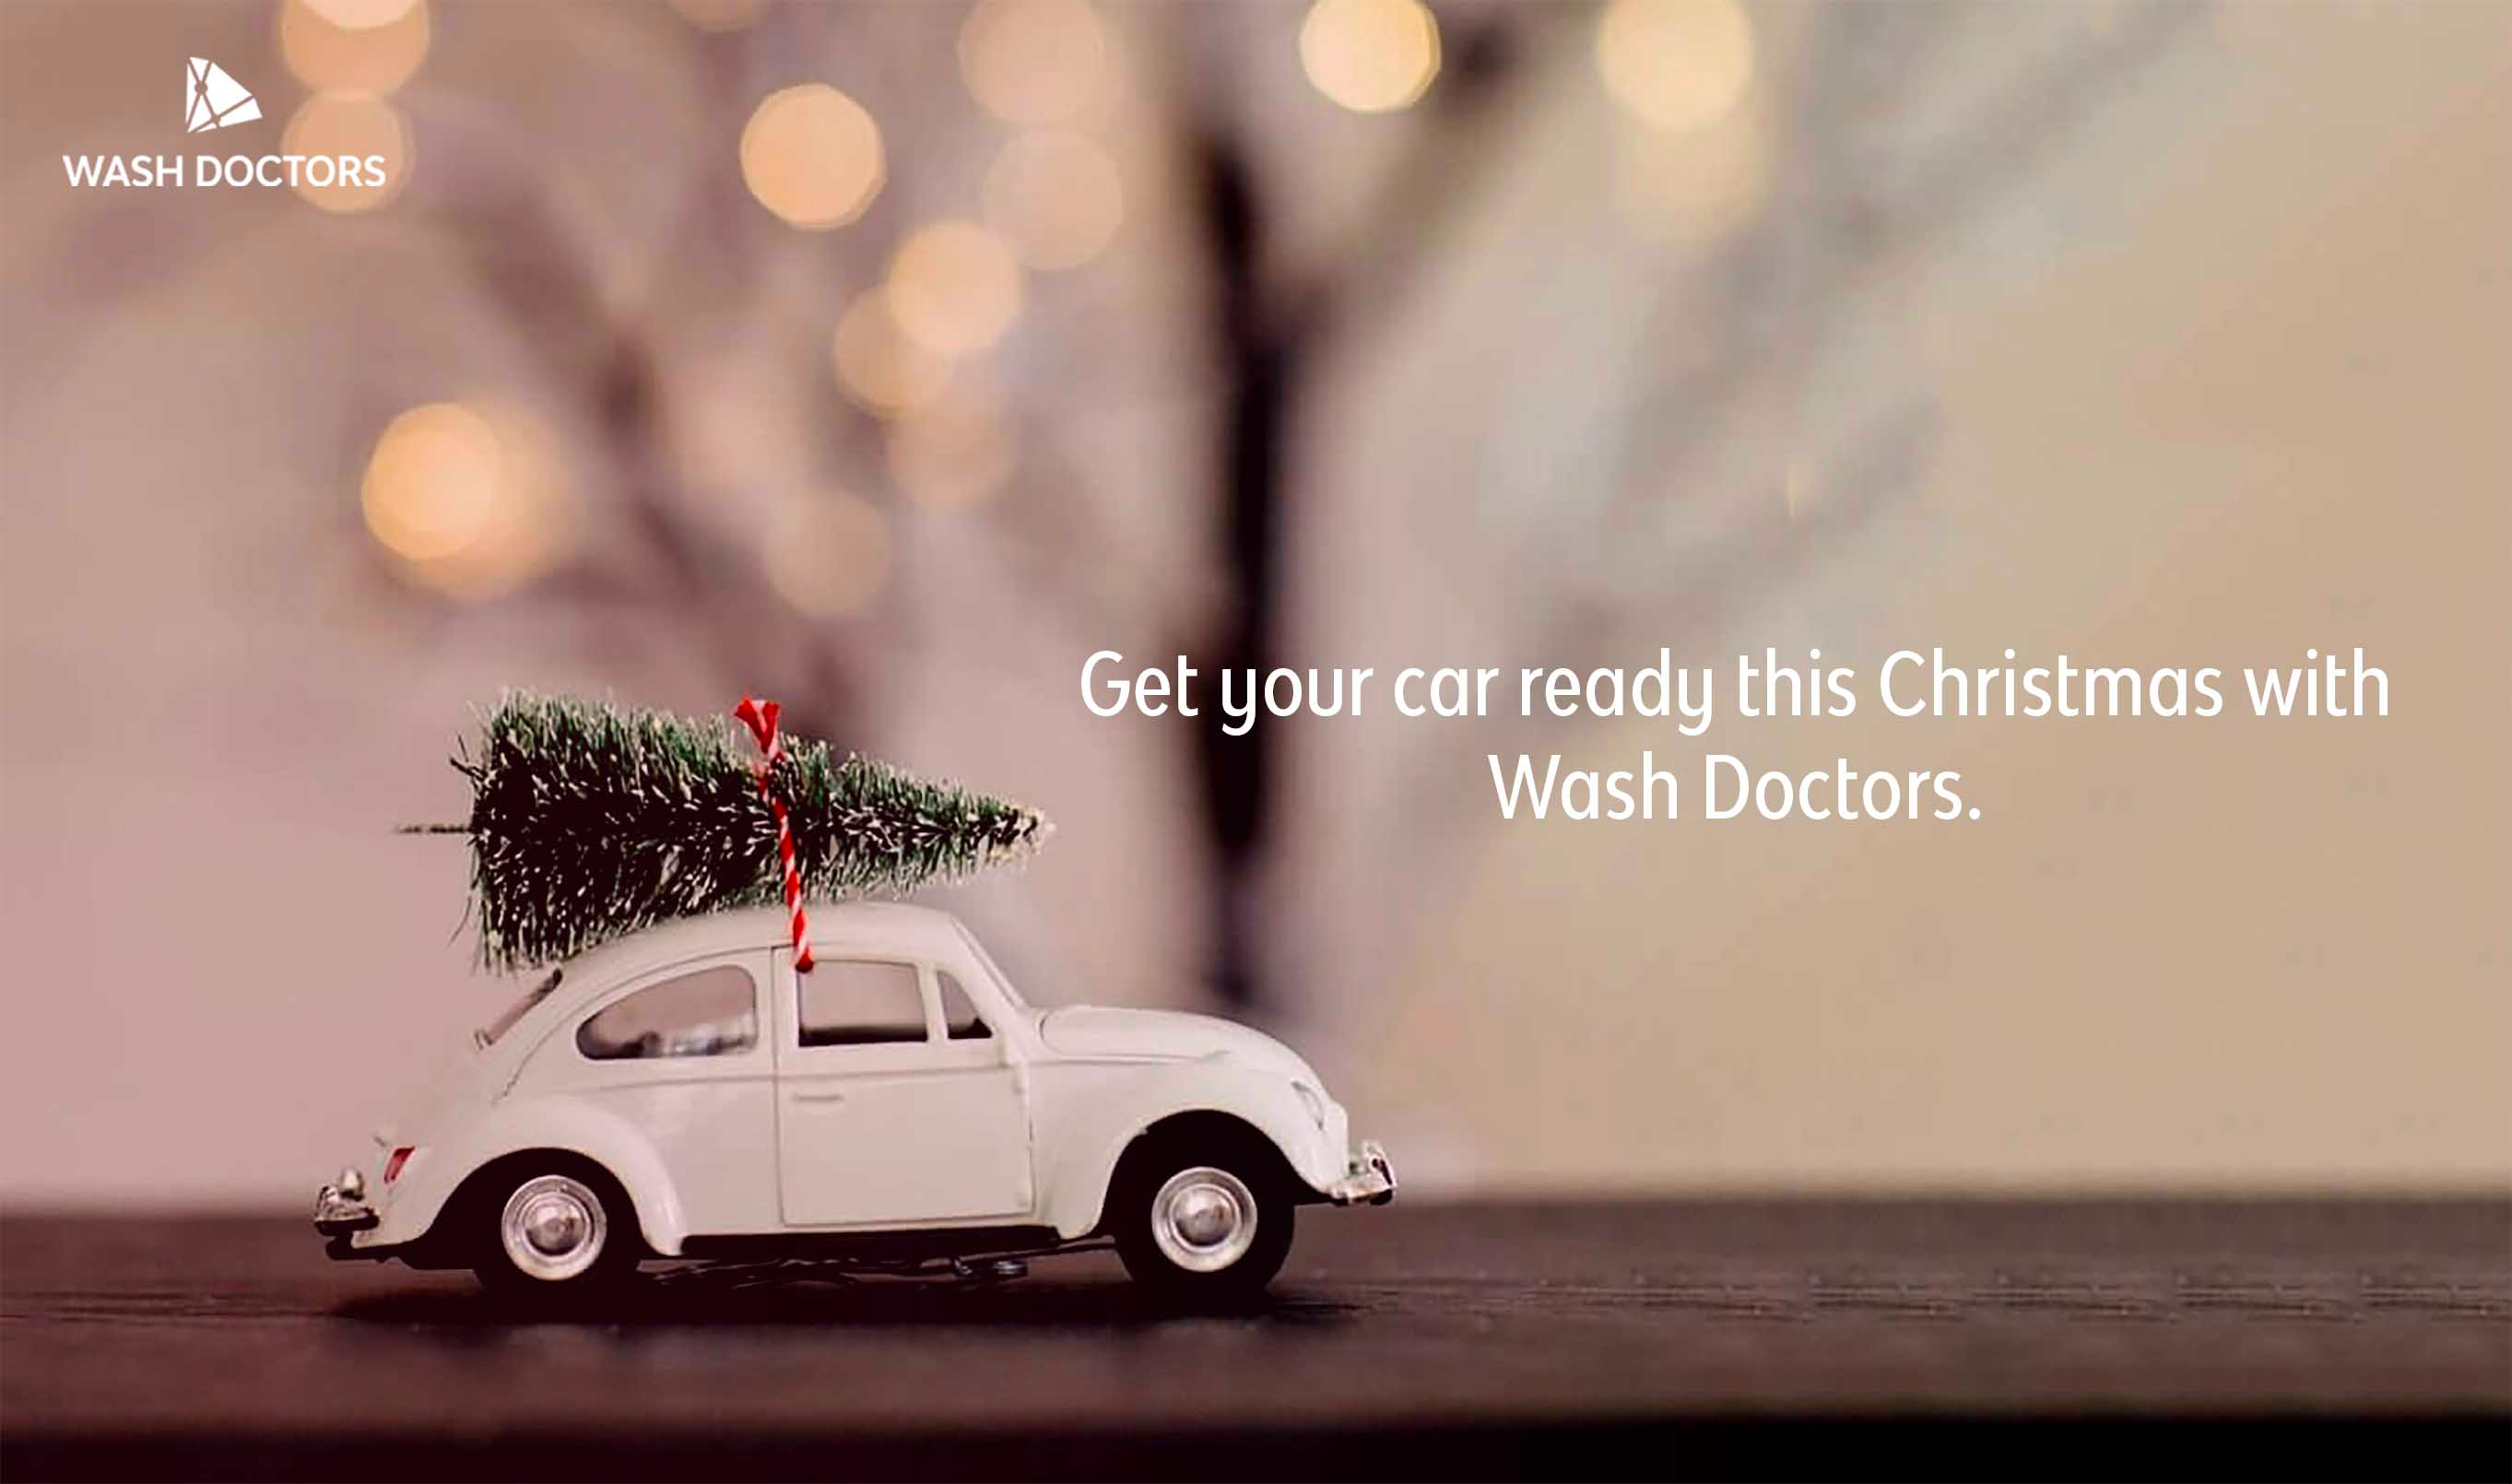 Blog london uk washdoctors get your car ready this christmas with wash doctors solutioingenieria Choice Image